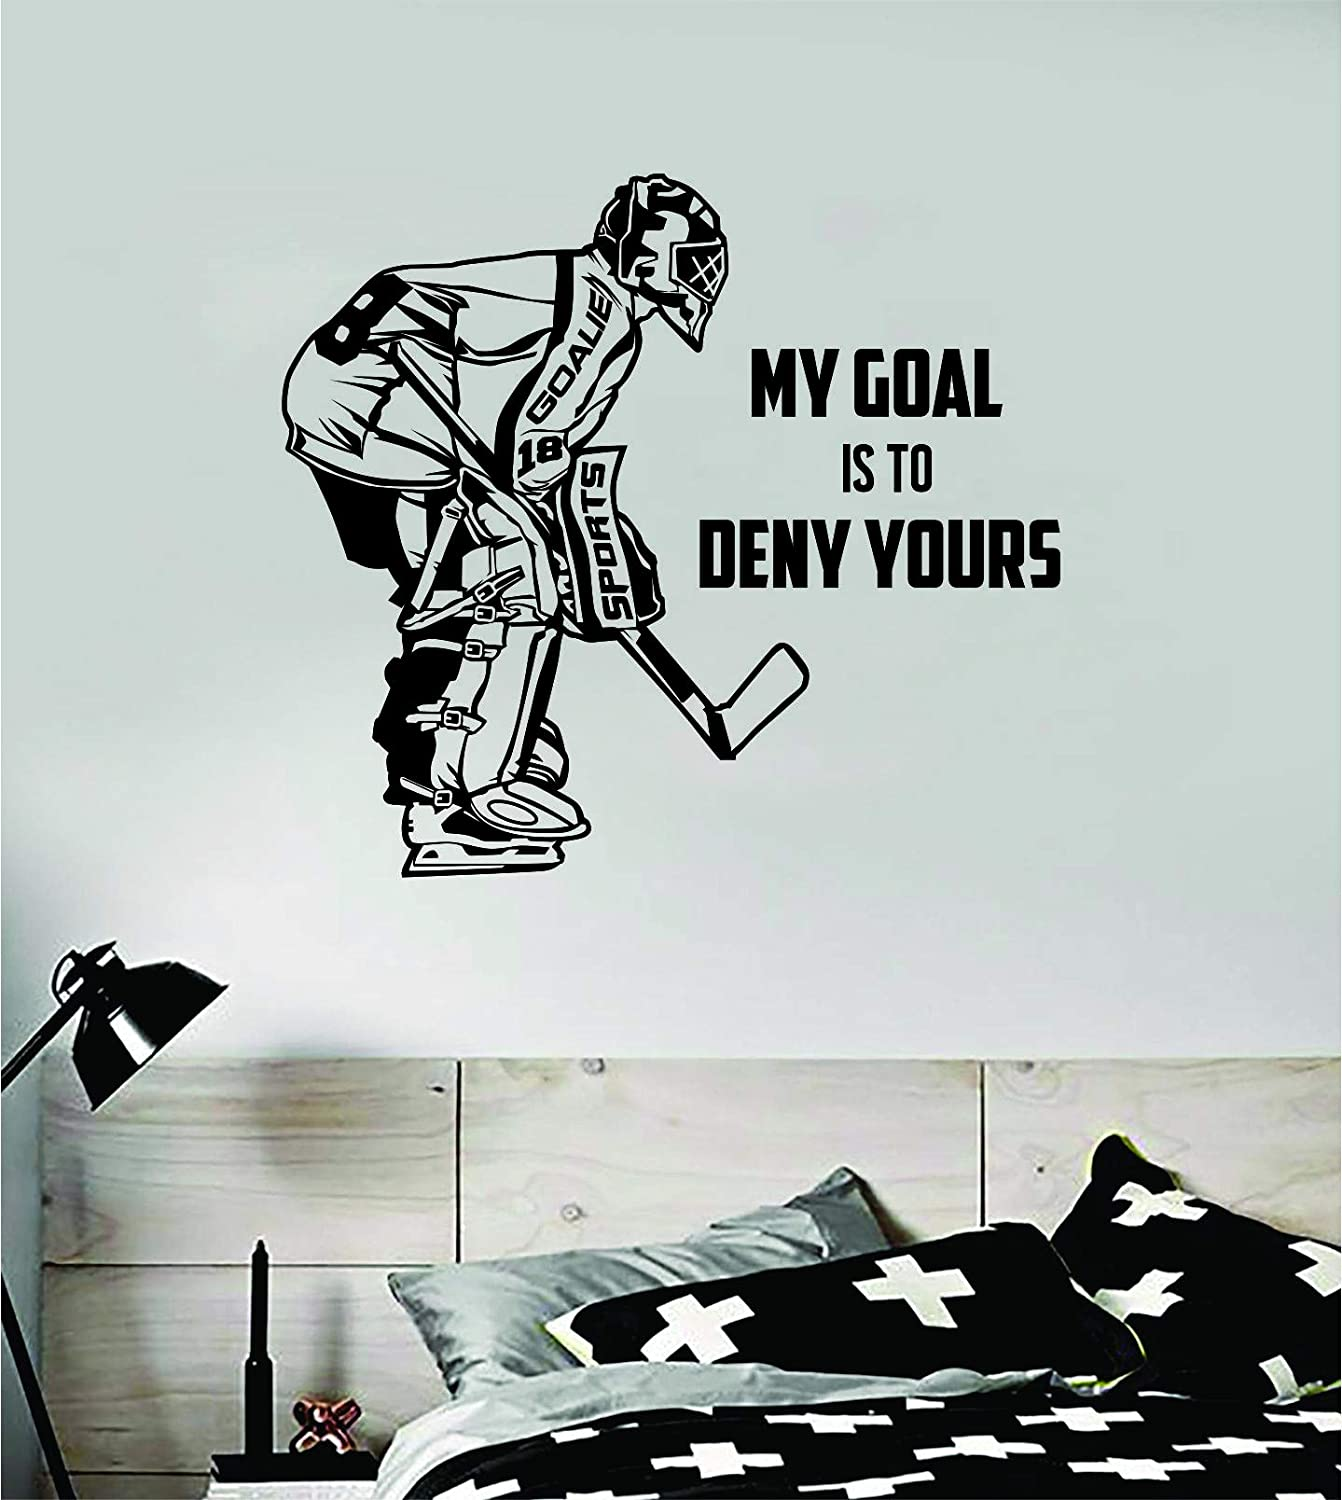 Hockey Goalie My Goal is to Deny Yours Wall Decal Sticker Vinyl Art Bedroom Room Decor Teen Quote Inspirational Boy Girl Baby Sports Team Play Ice Skate Roller Blade Winter Goal Man Cave Kids